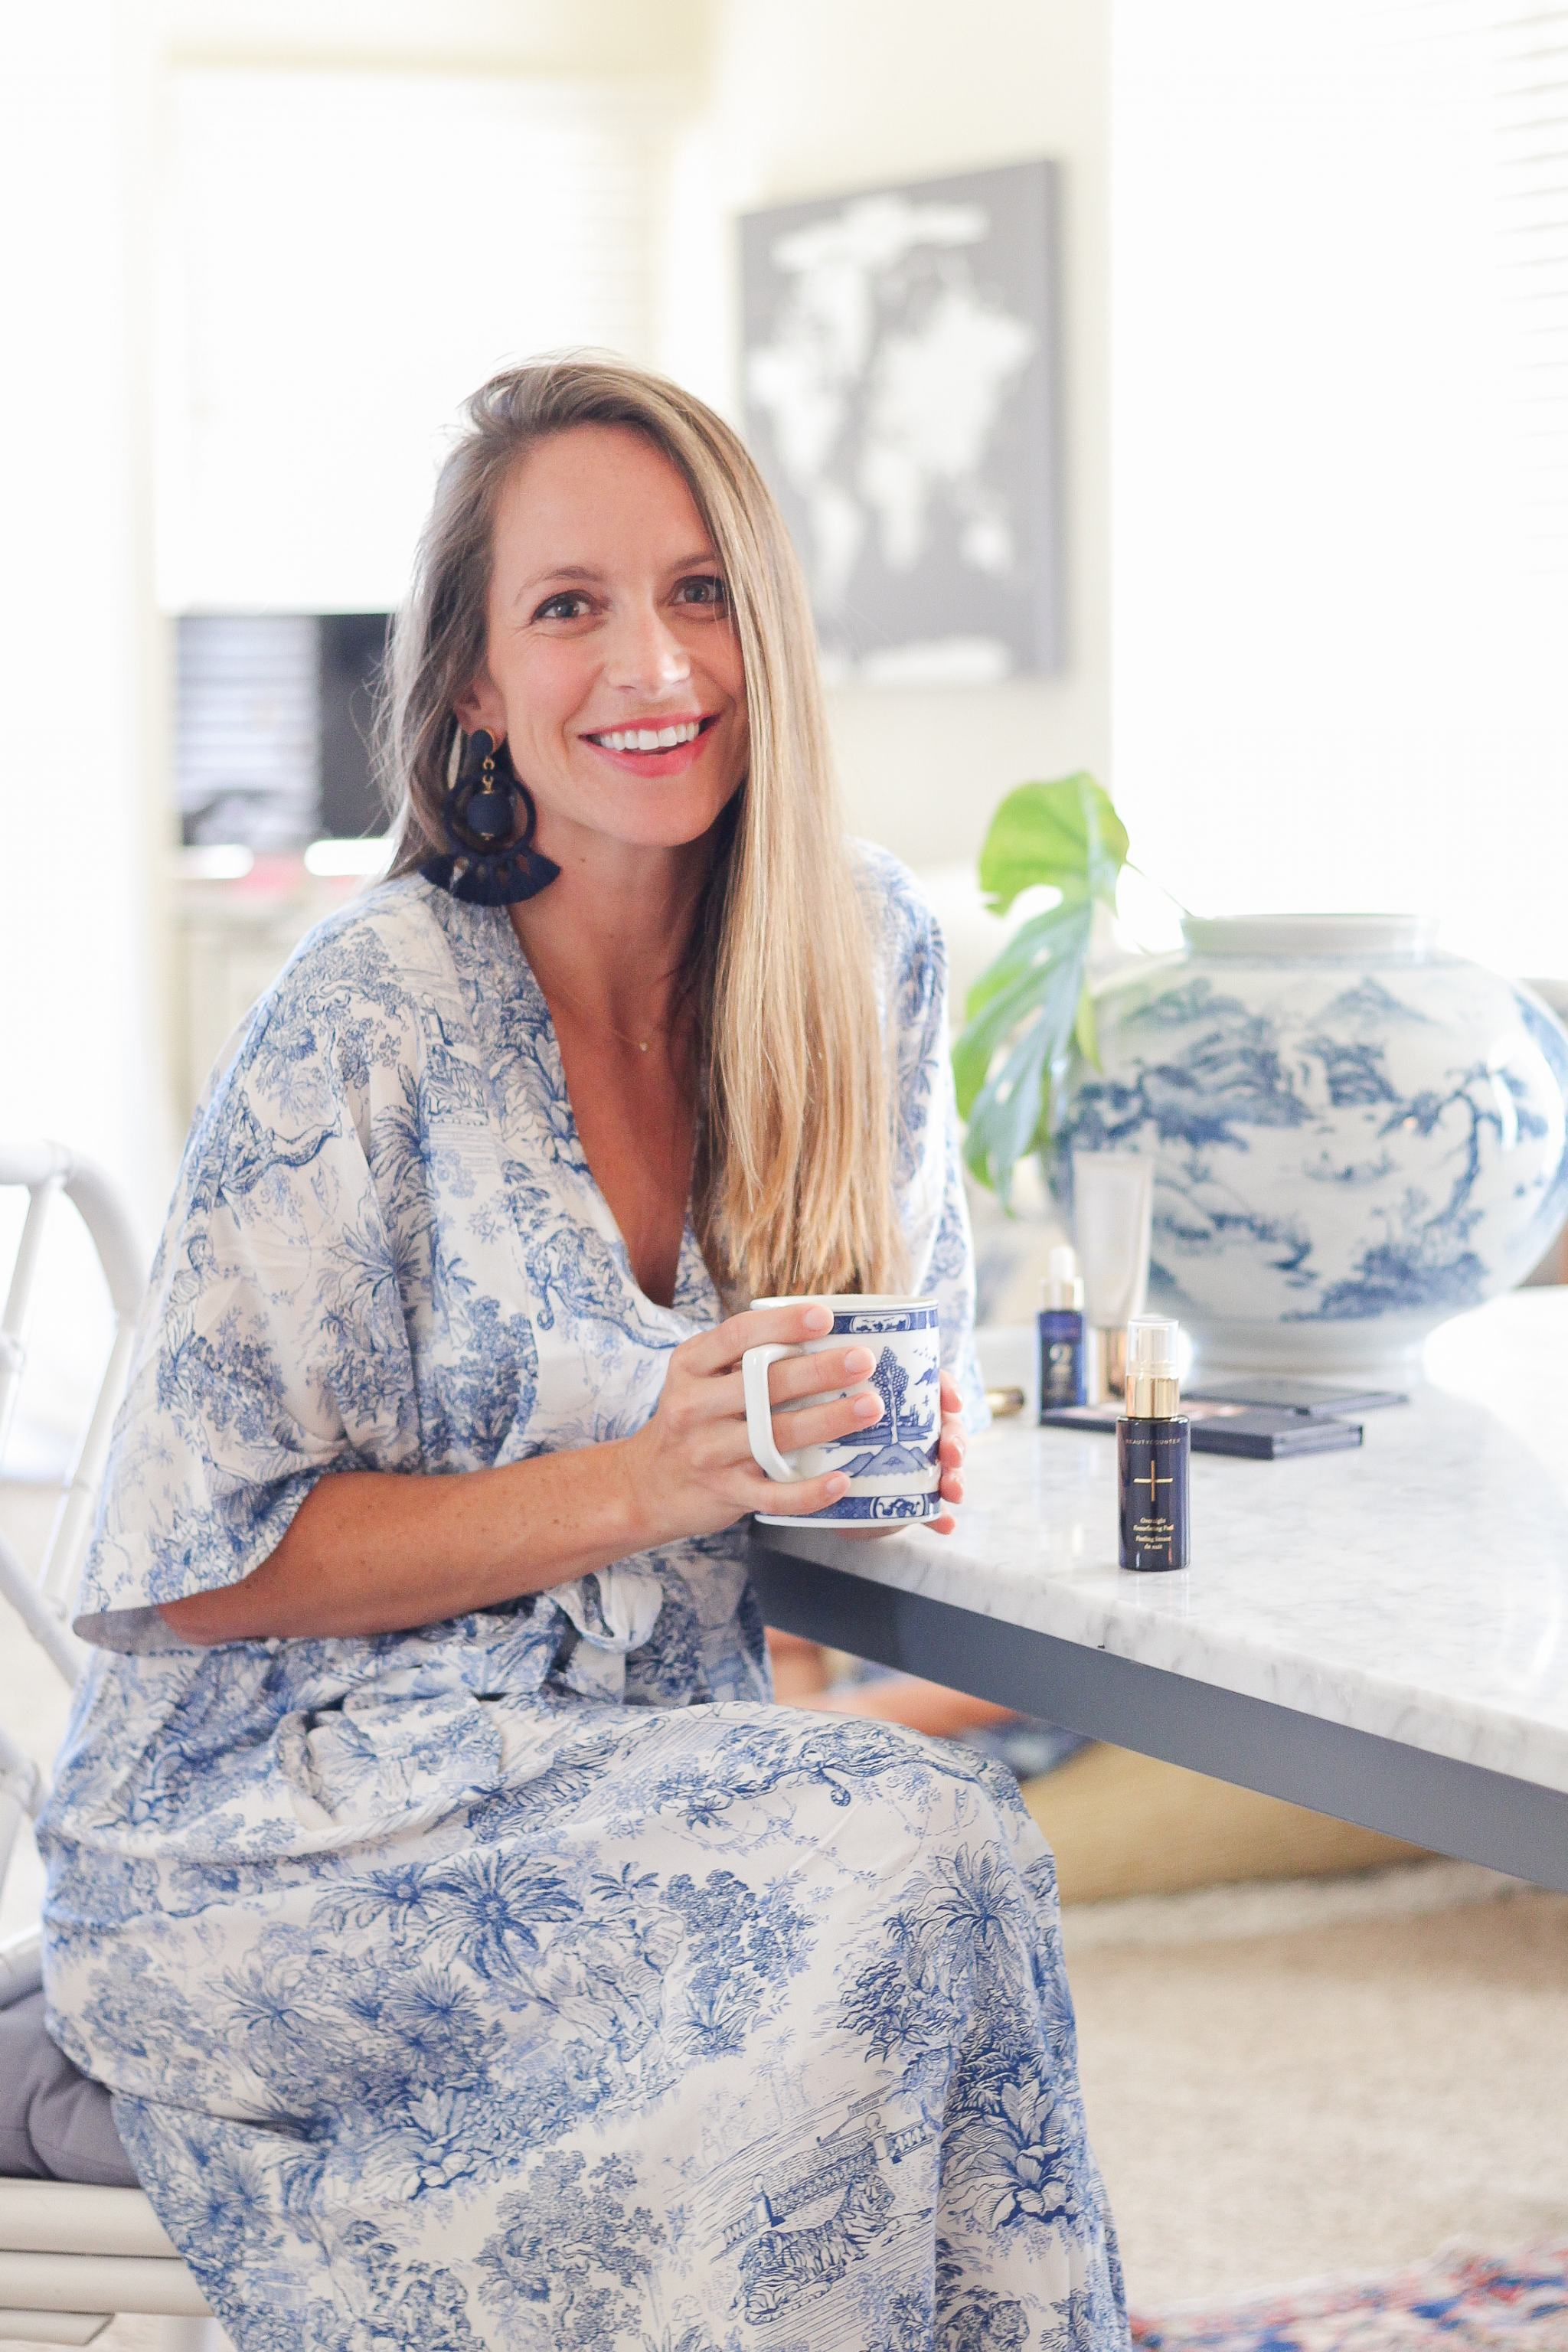 classic style - blue and white dress - living room decor - what it's like to be a beautycounter consultant - being a beautycounter consultant - how do you become a beautycounter consultant - tuckernuck earrings - how much do beautycounter consultants make - clean beauty - better beauty - preppy style - blue and white caftan - caftan